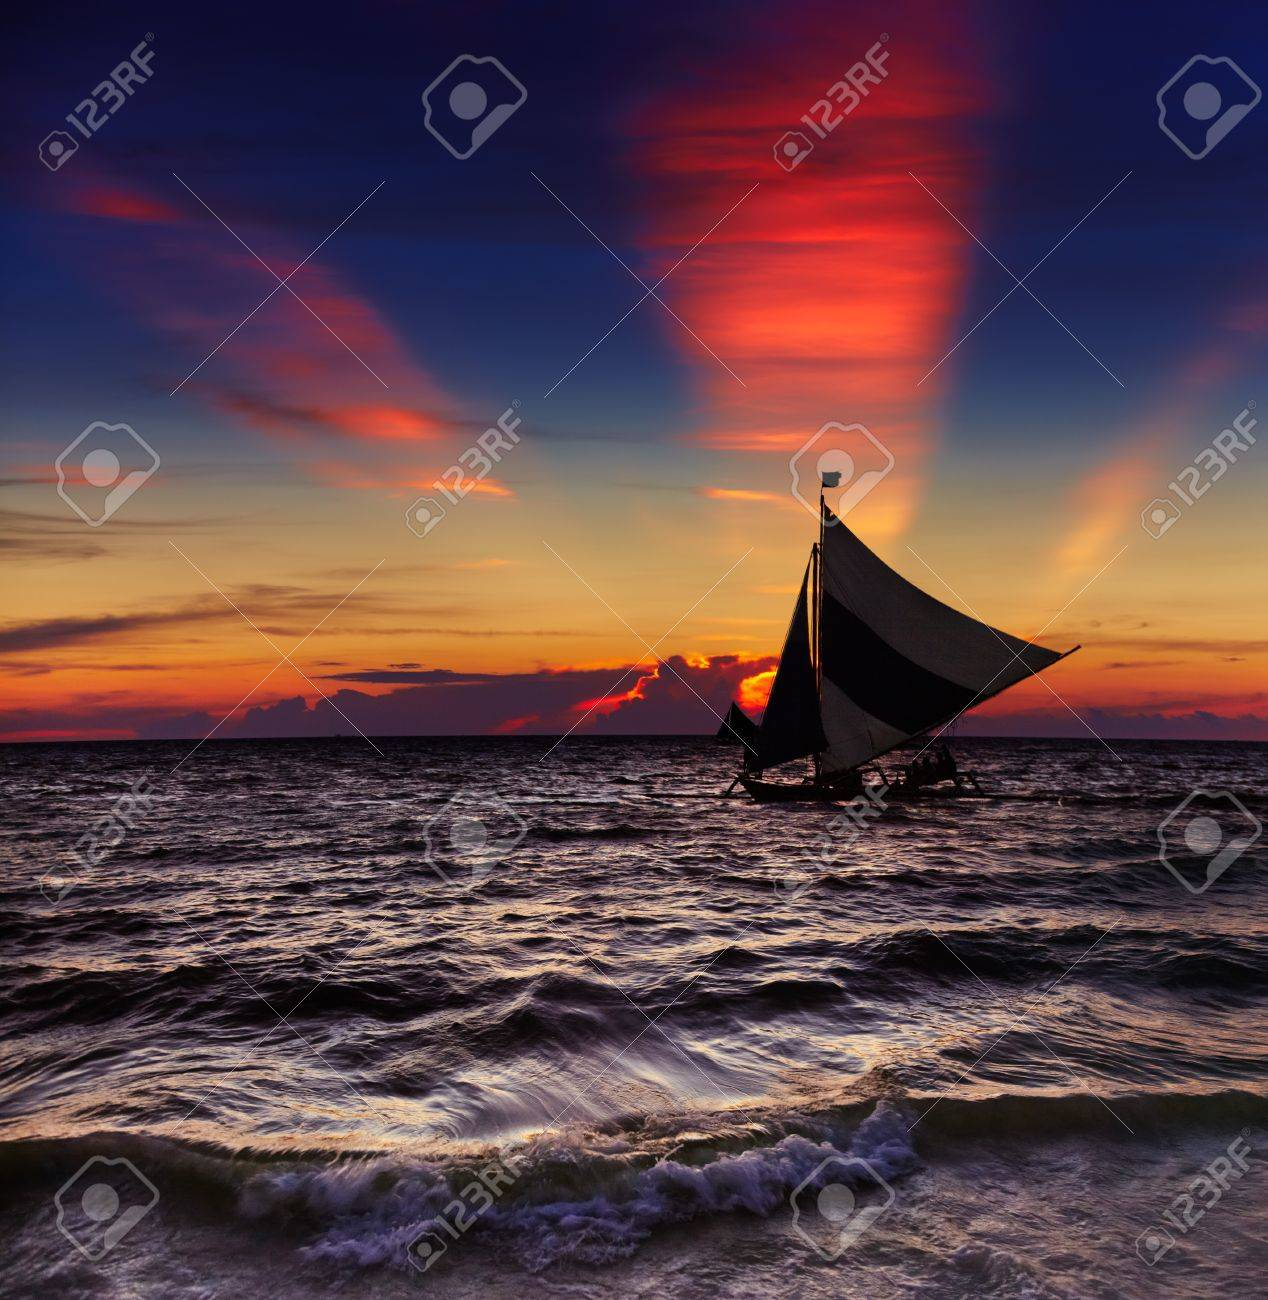 Tropical sunset with sailboat, Boracay, Philippines - 18366278